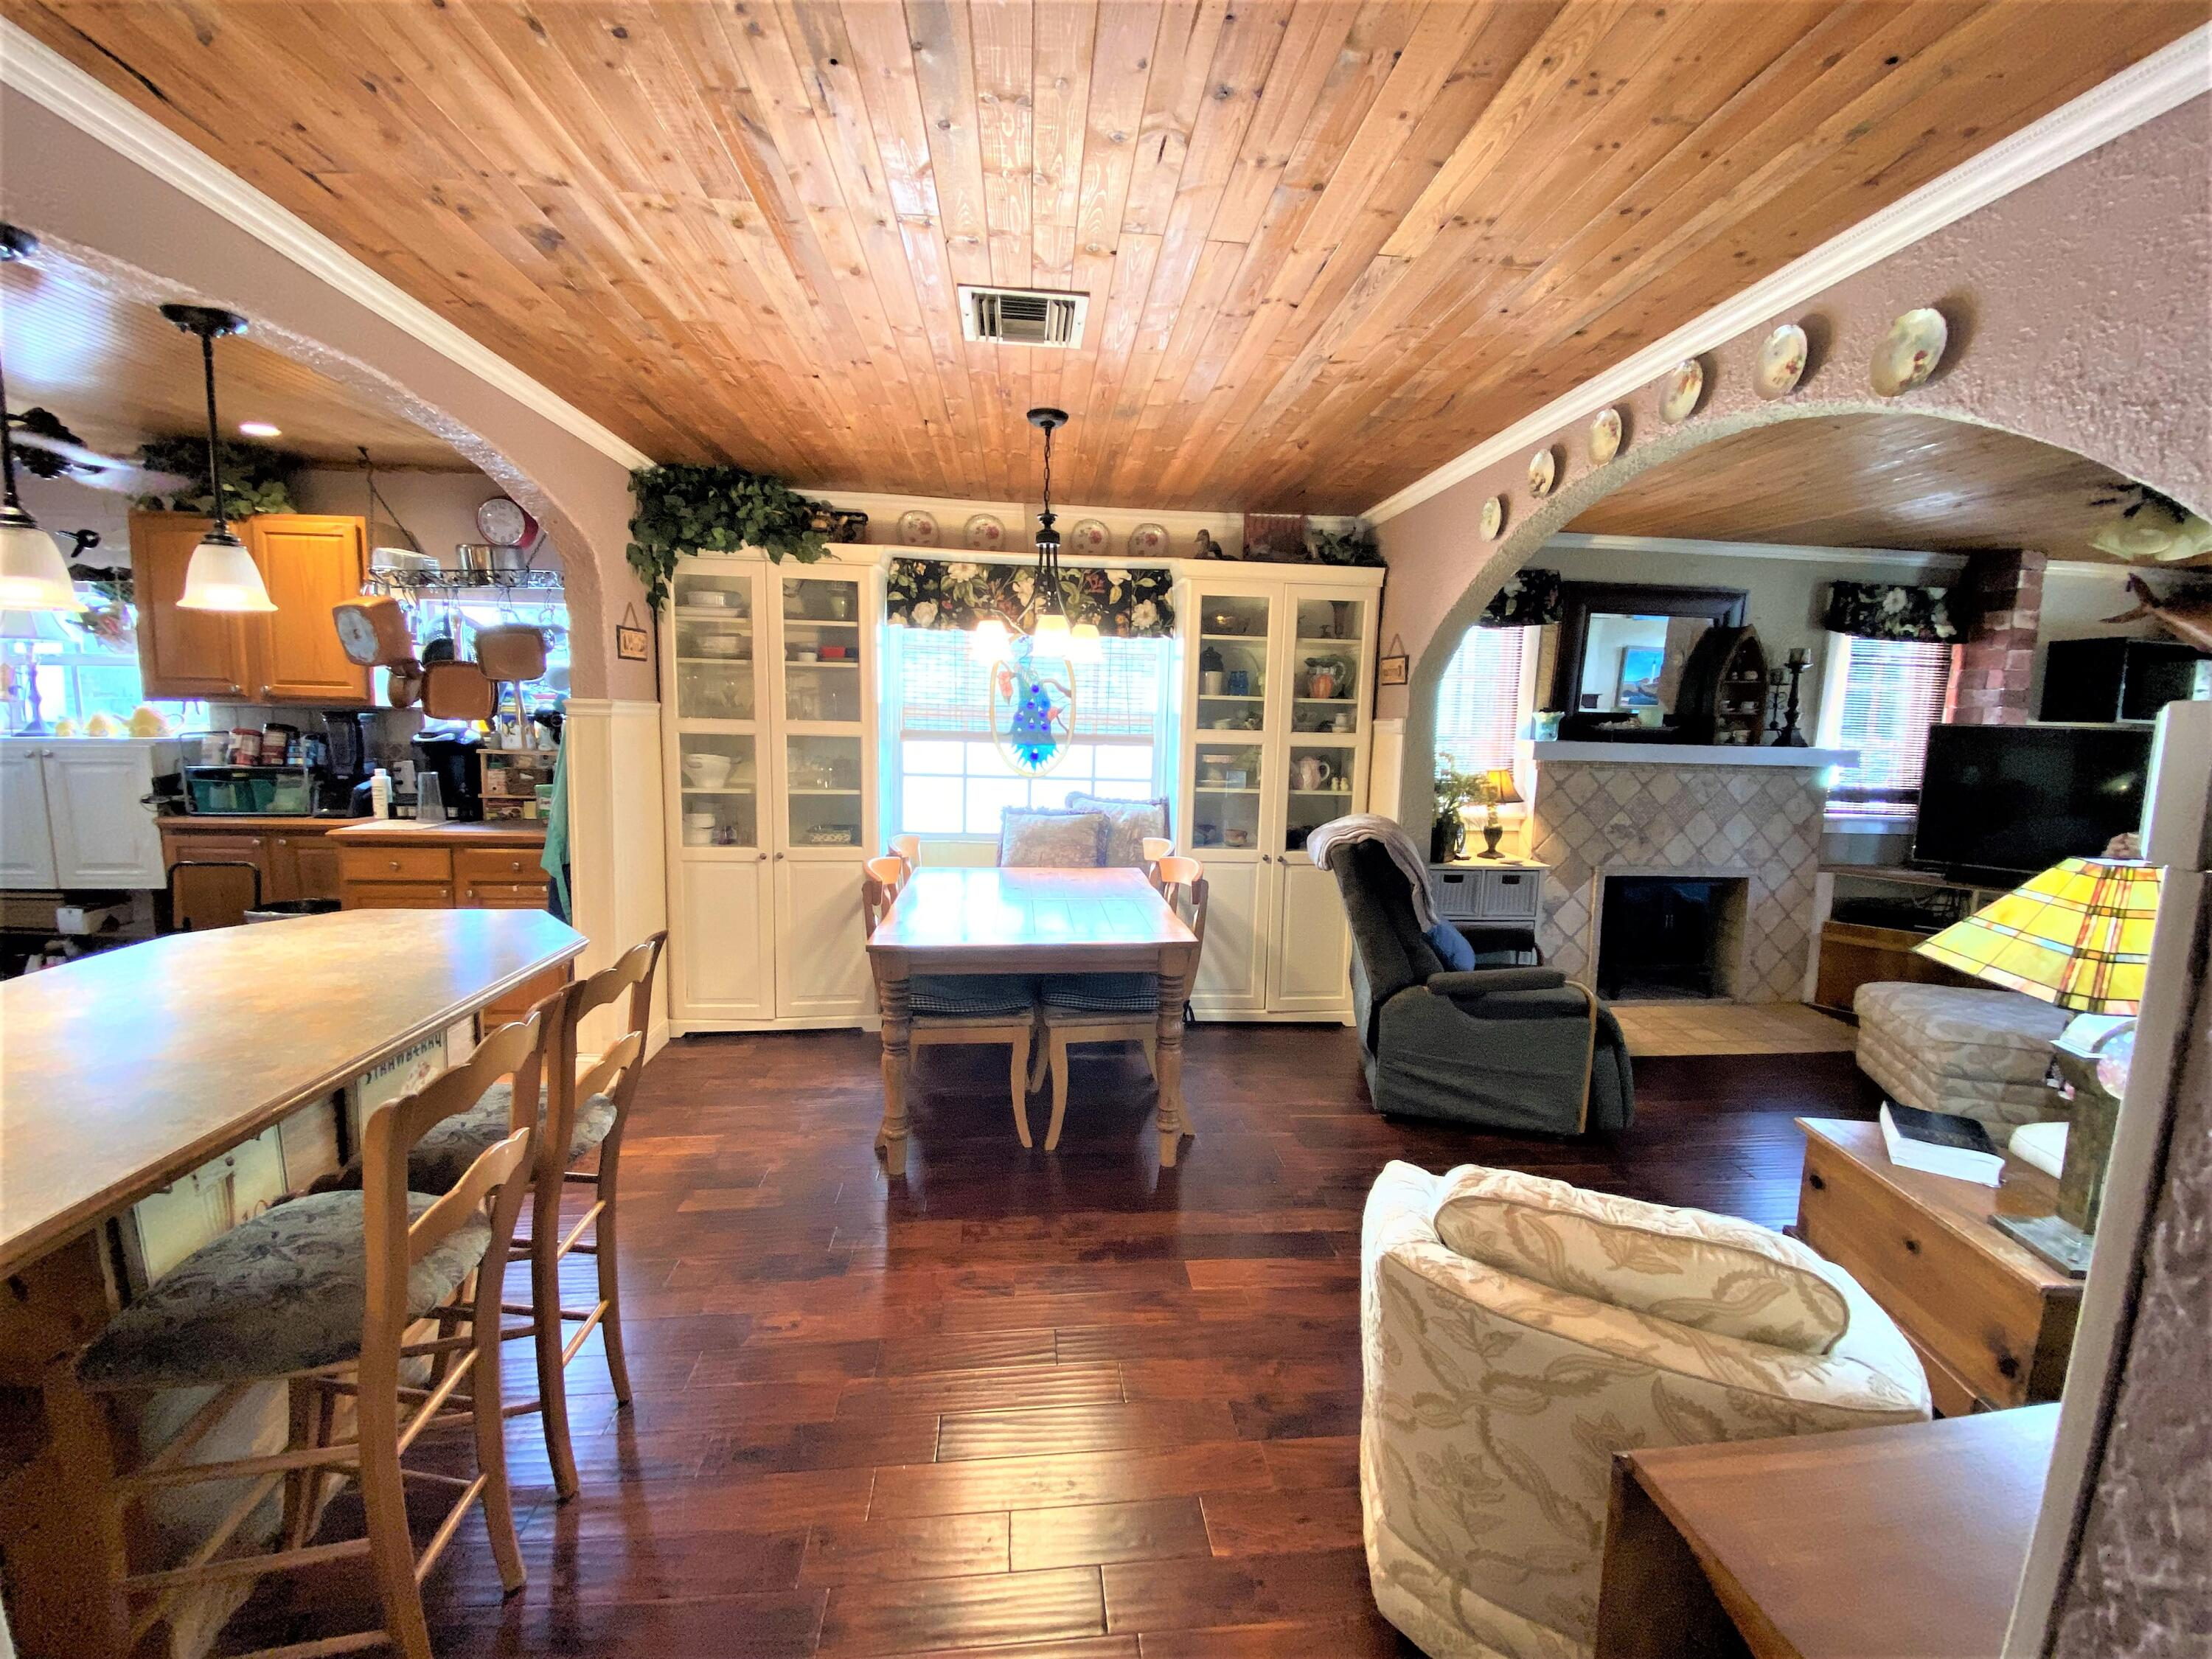 BUILT IN CURIO CABINETS